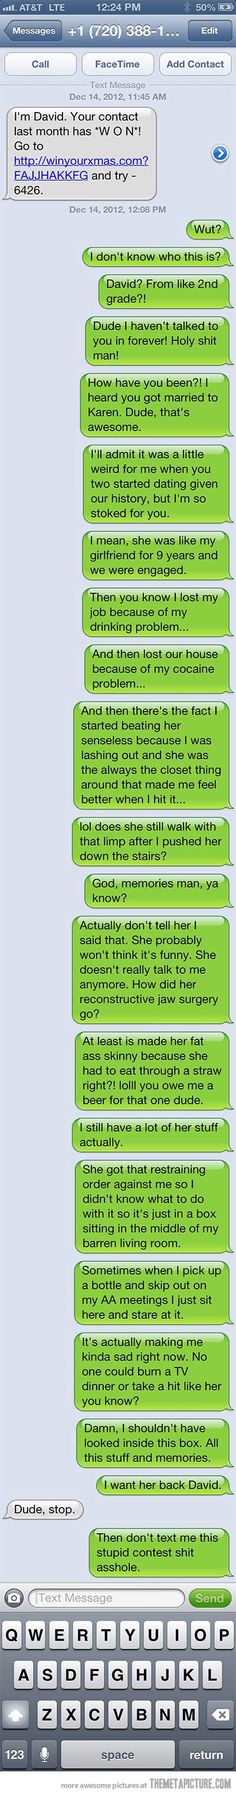 Hahaha!!  Now that's texting like a BOSS!!!